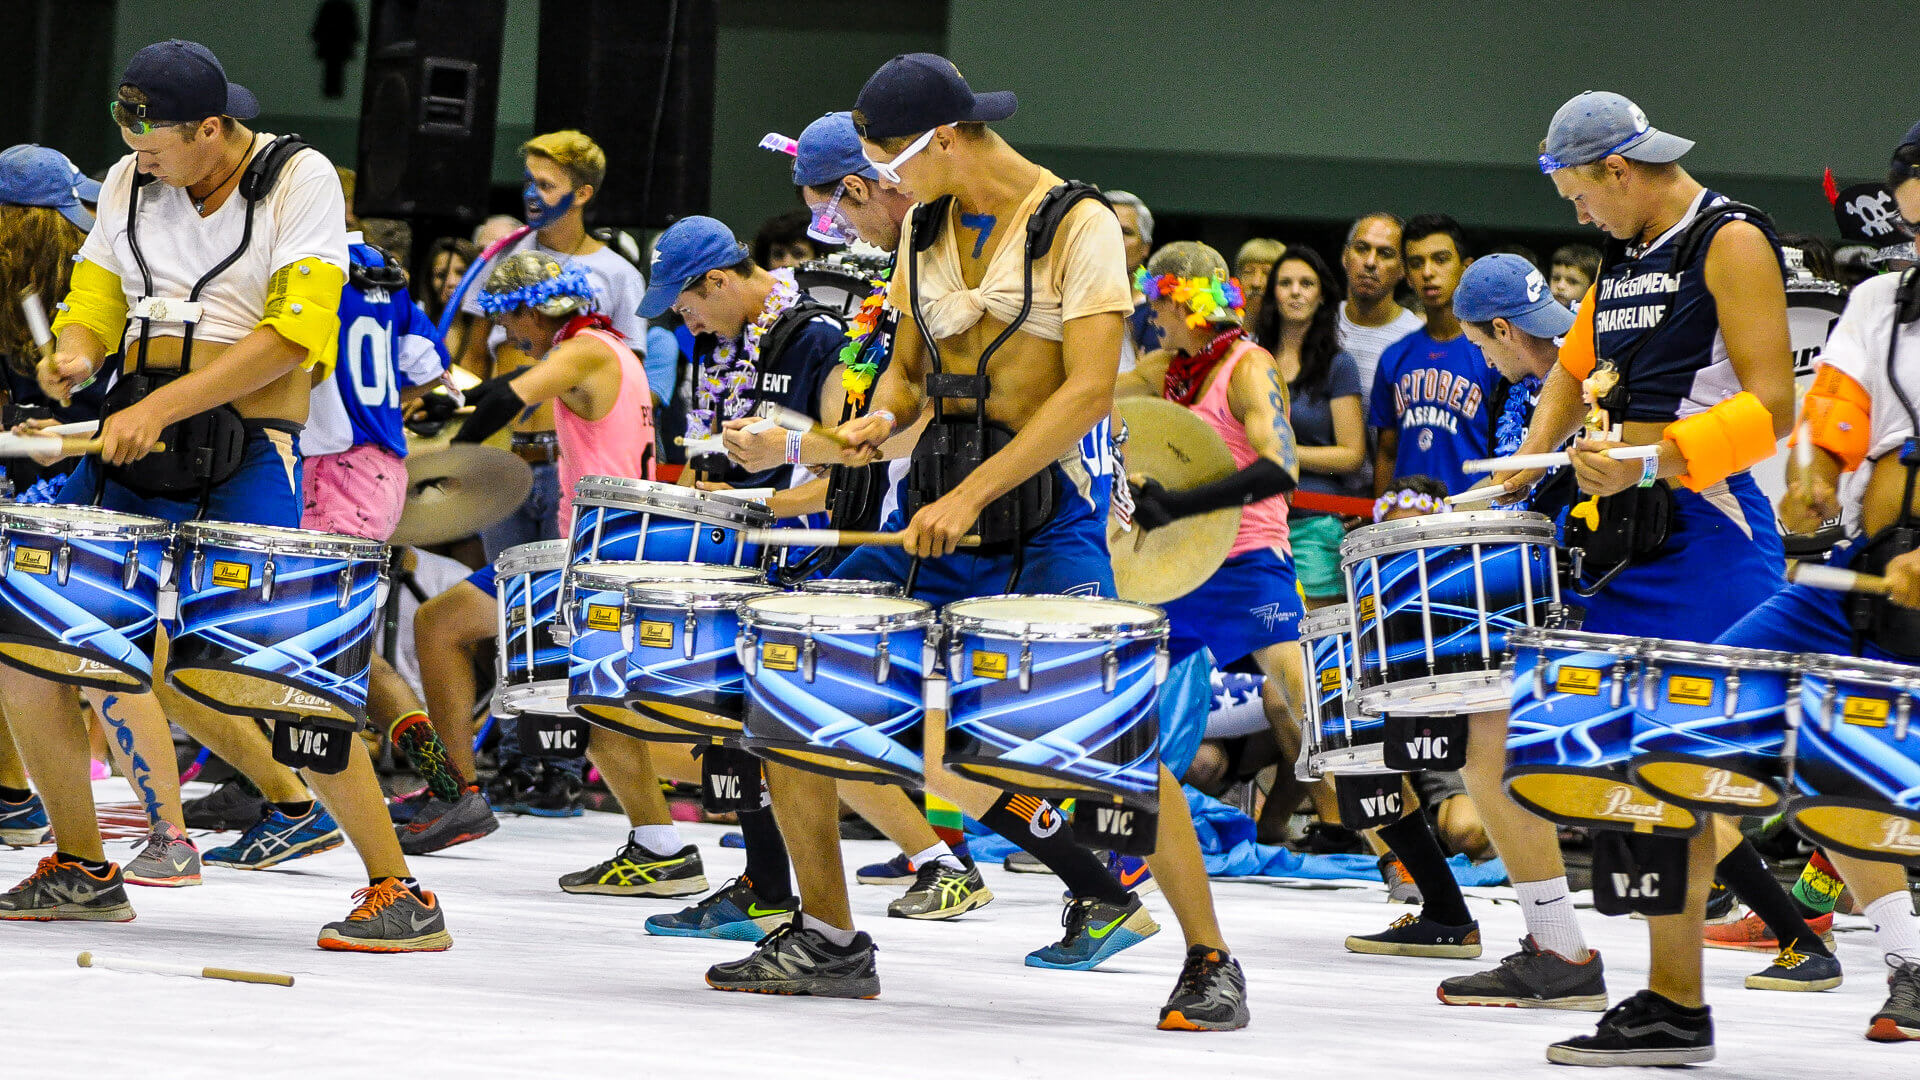 DrumLine Battle teams throw down in fourth-annual Indy event